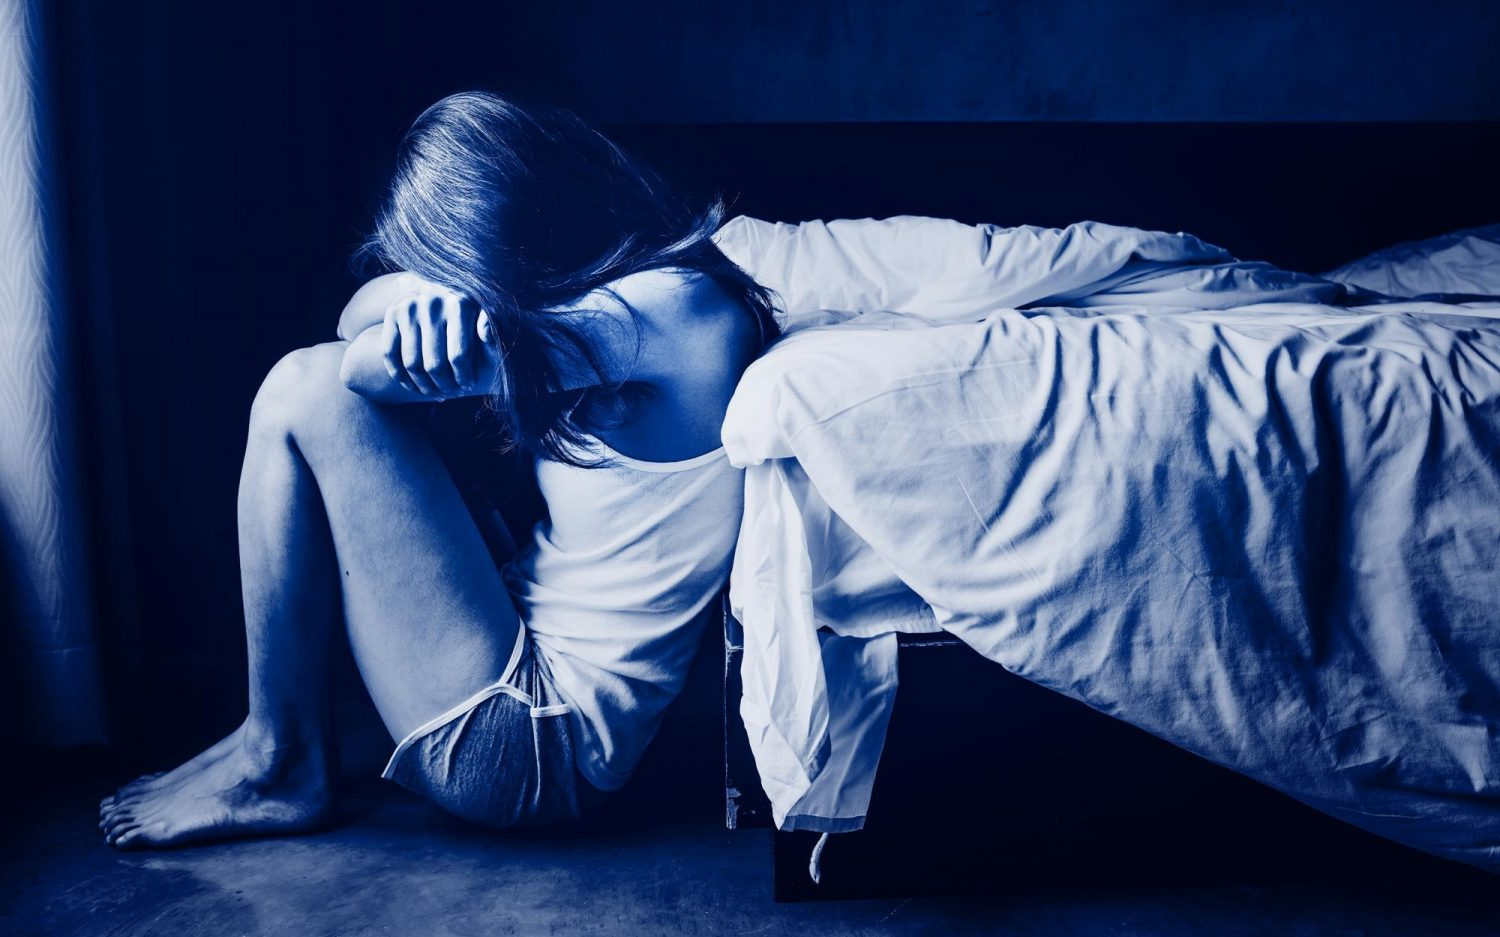 Grappling with abortion trauma